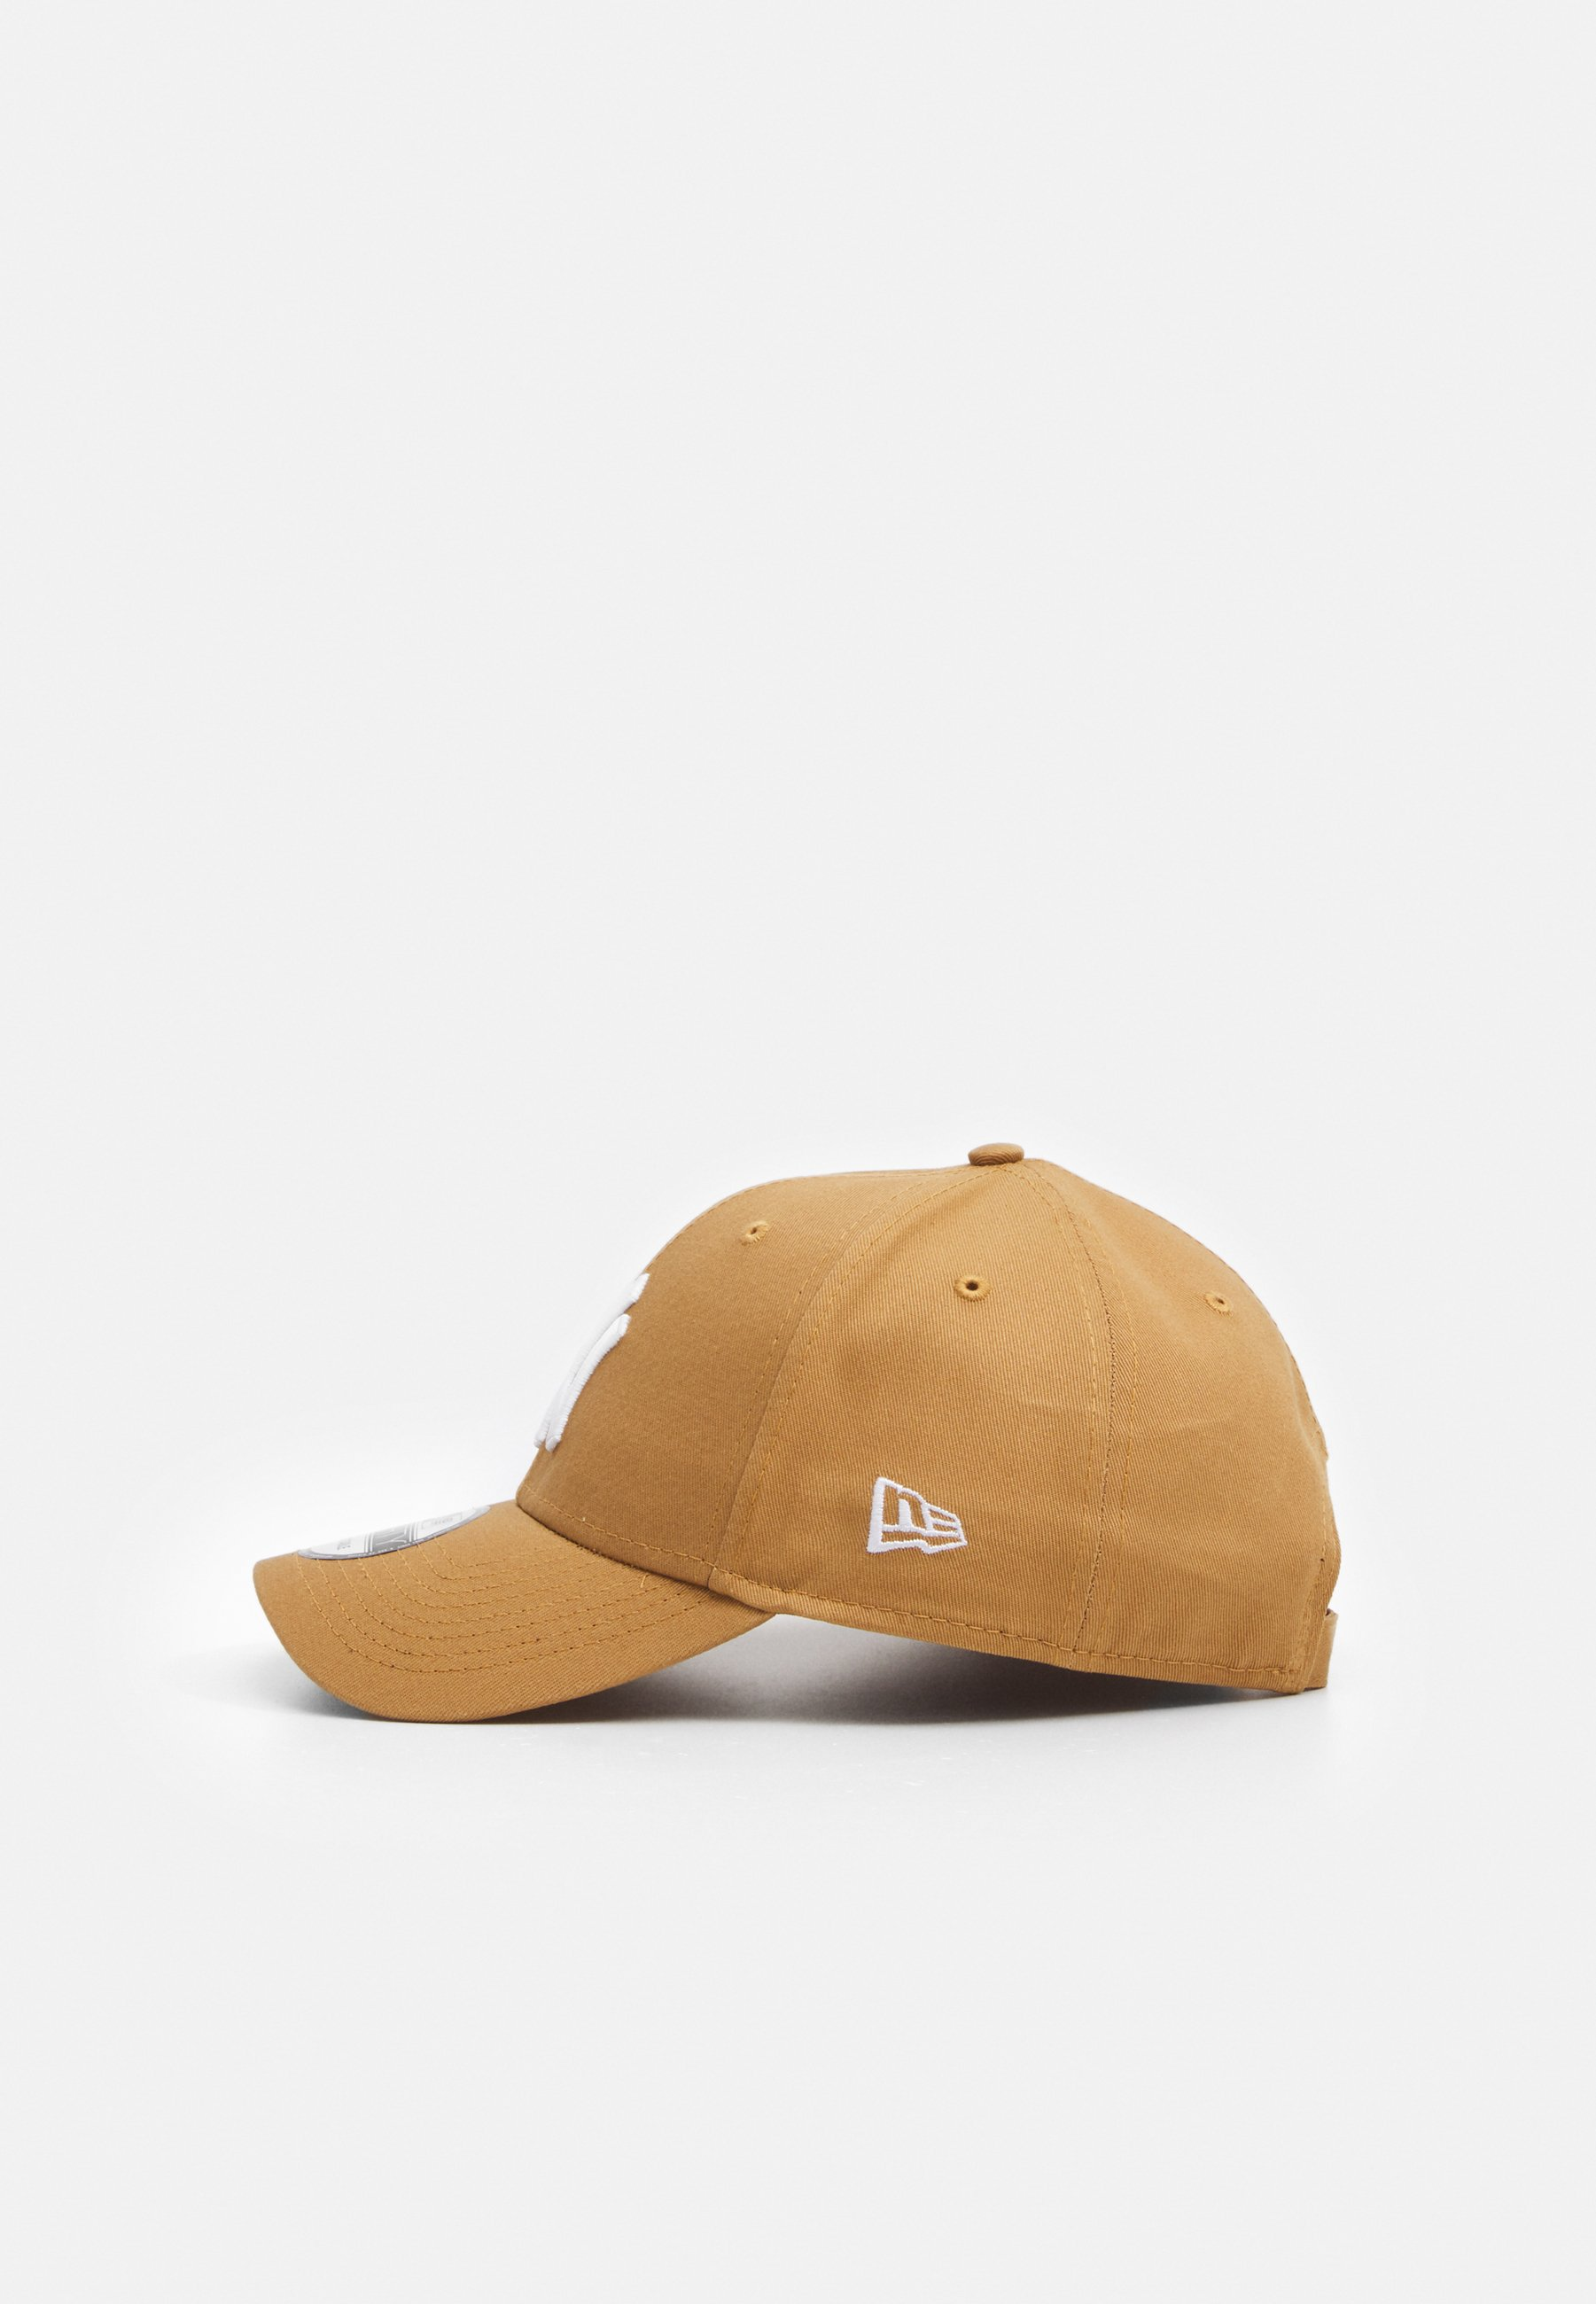 New Era COLOUR ESSENTIAL FORTY - Cap - wheat/white/brunlig n0MyEPZqP1HXle1